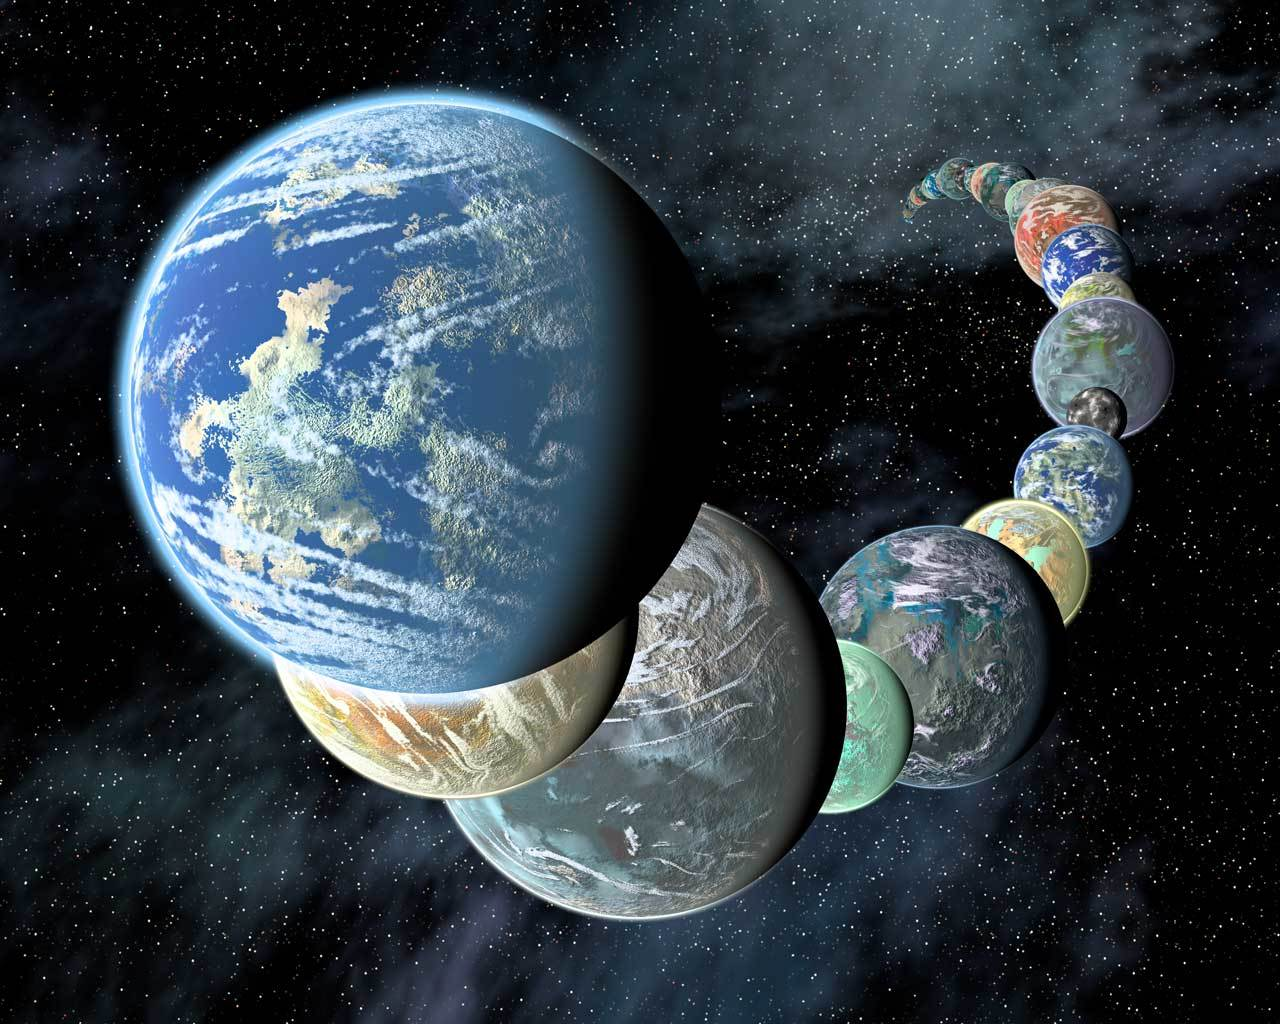 Exoplanets- Planets outside solar system